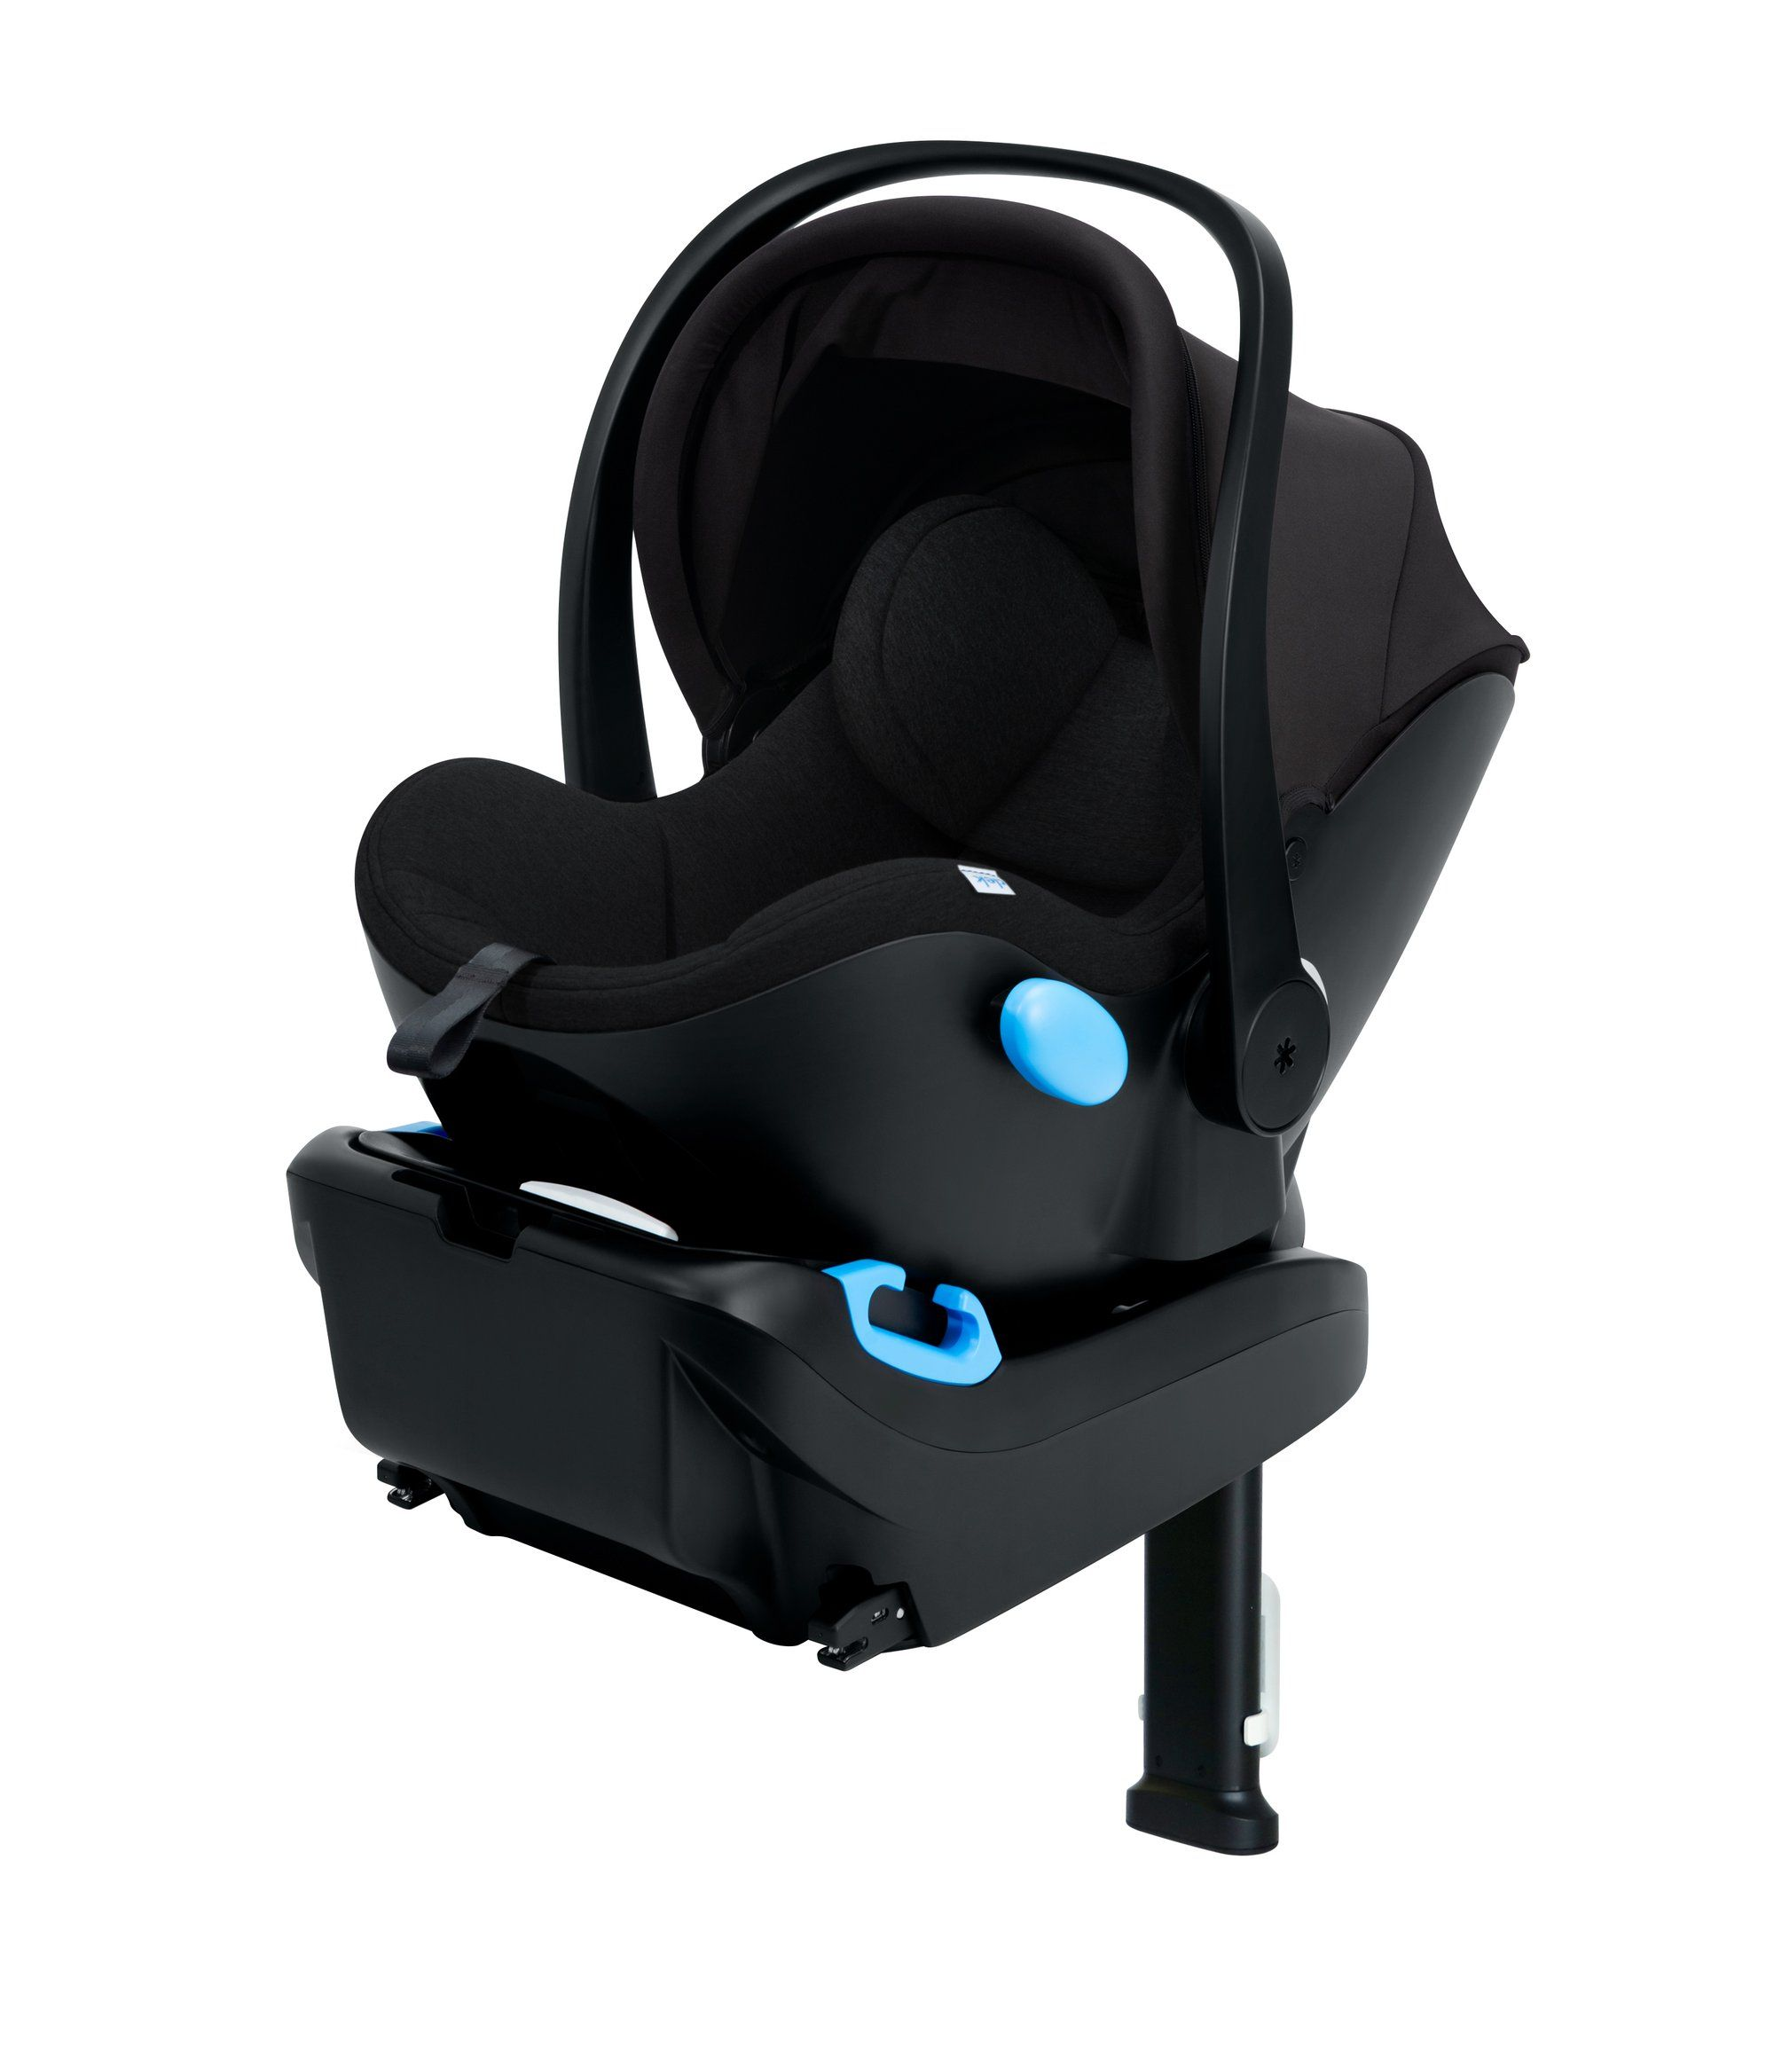 Clek liing infant car seat and base in 2020 with images